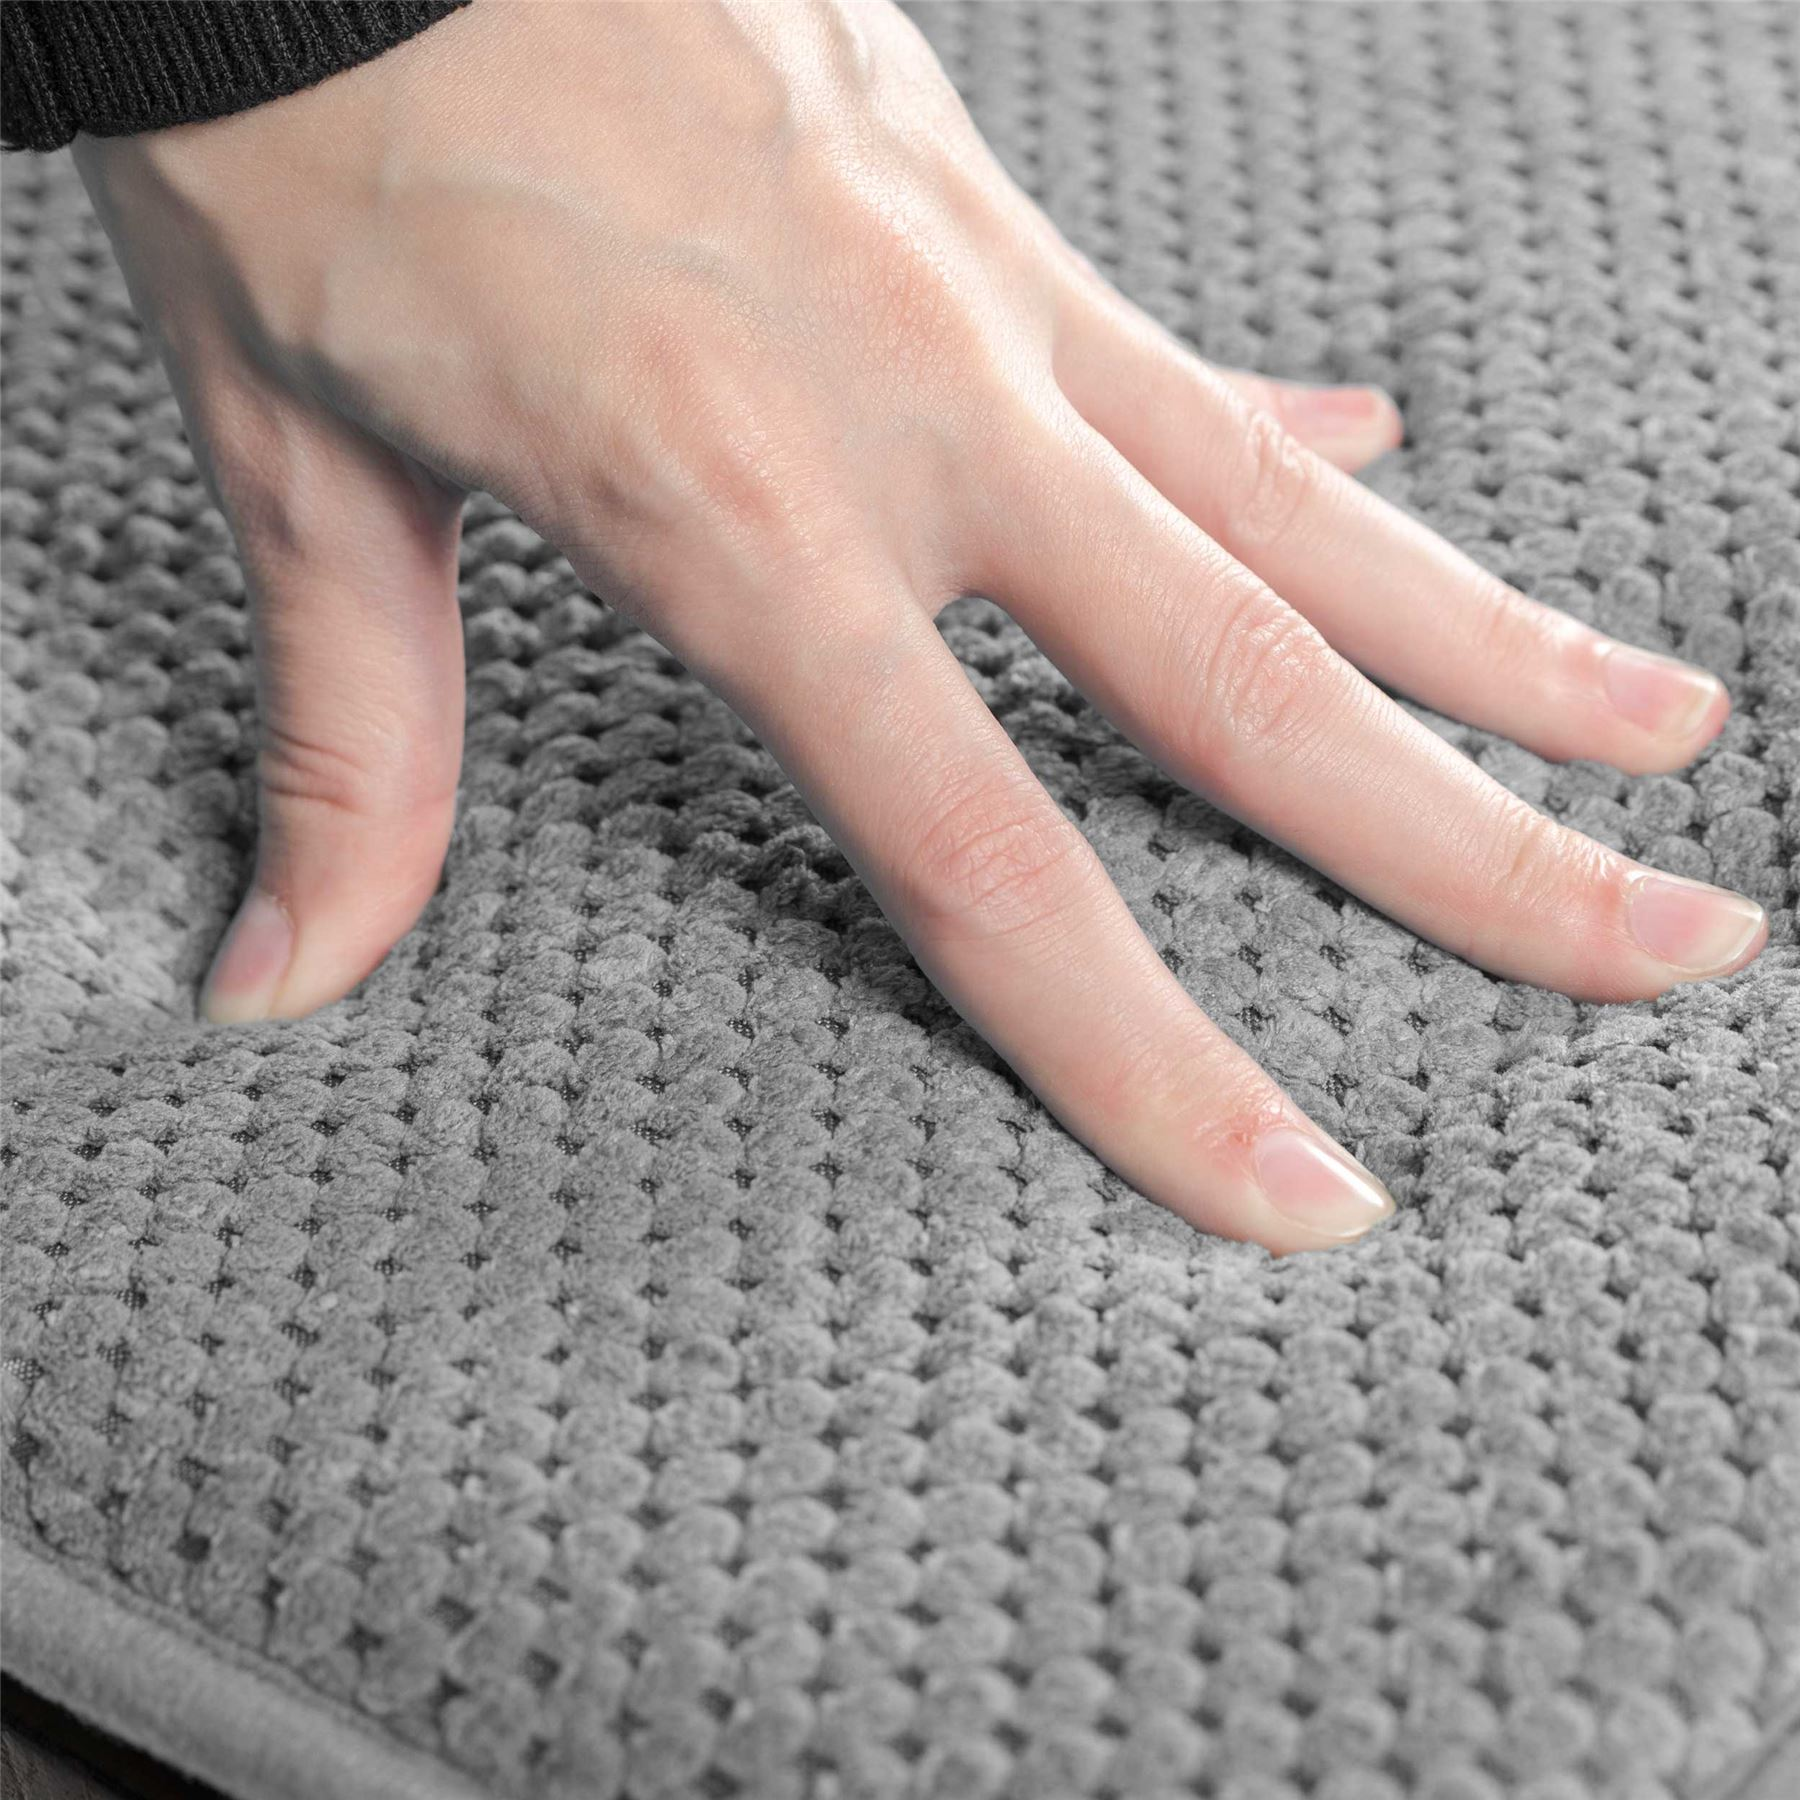 rugs floors and mat mats anti connect p rug canada in area for fatigue depot a black home with borders foam pads categories en the floor